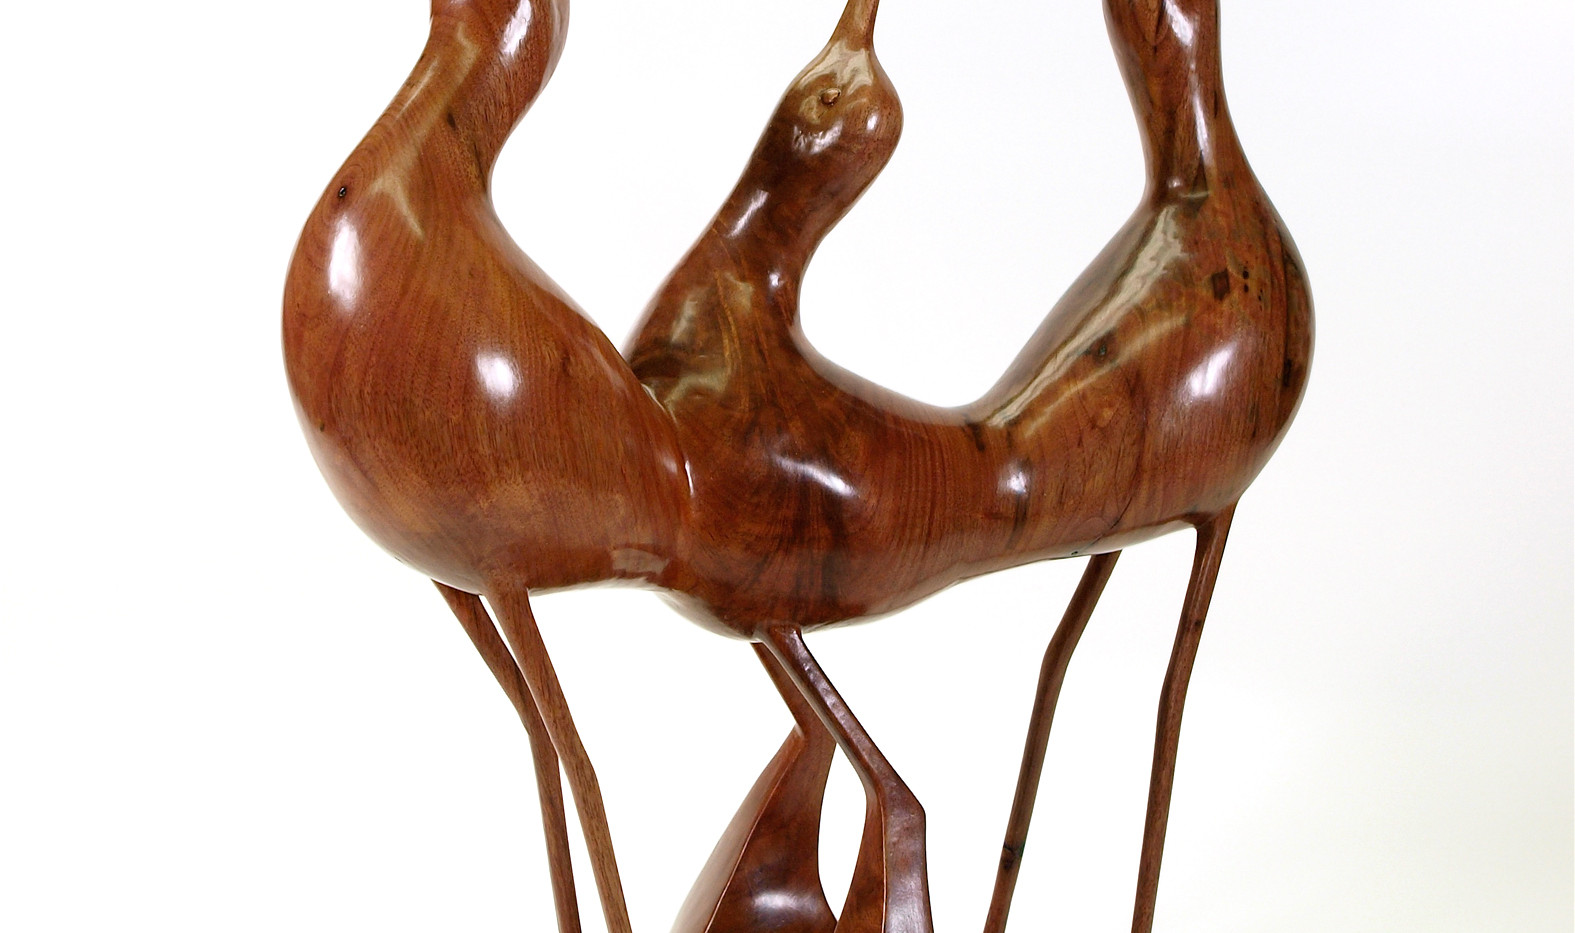 Avocets in Walnut (2010)